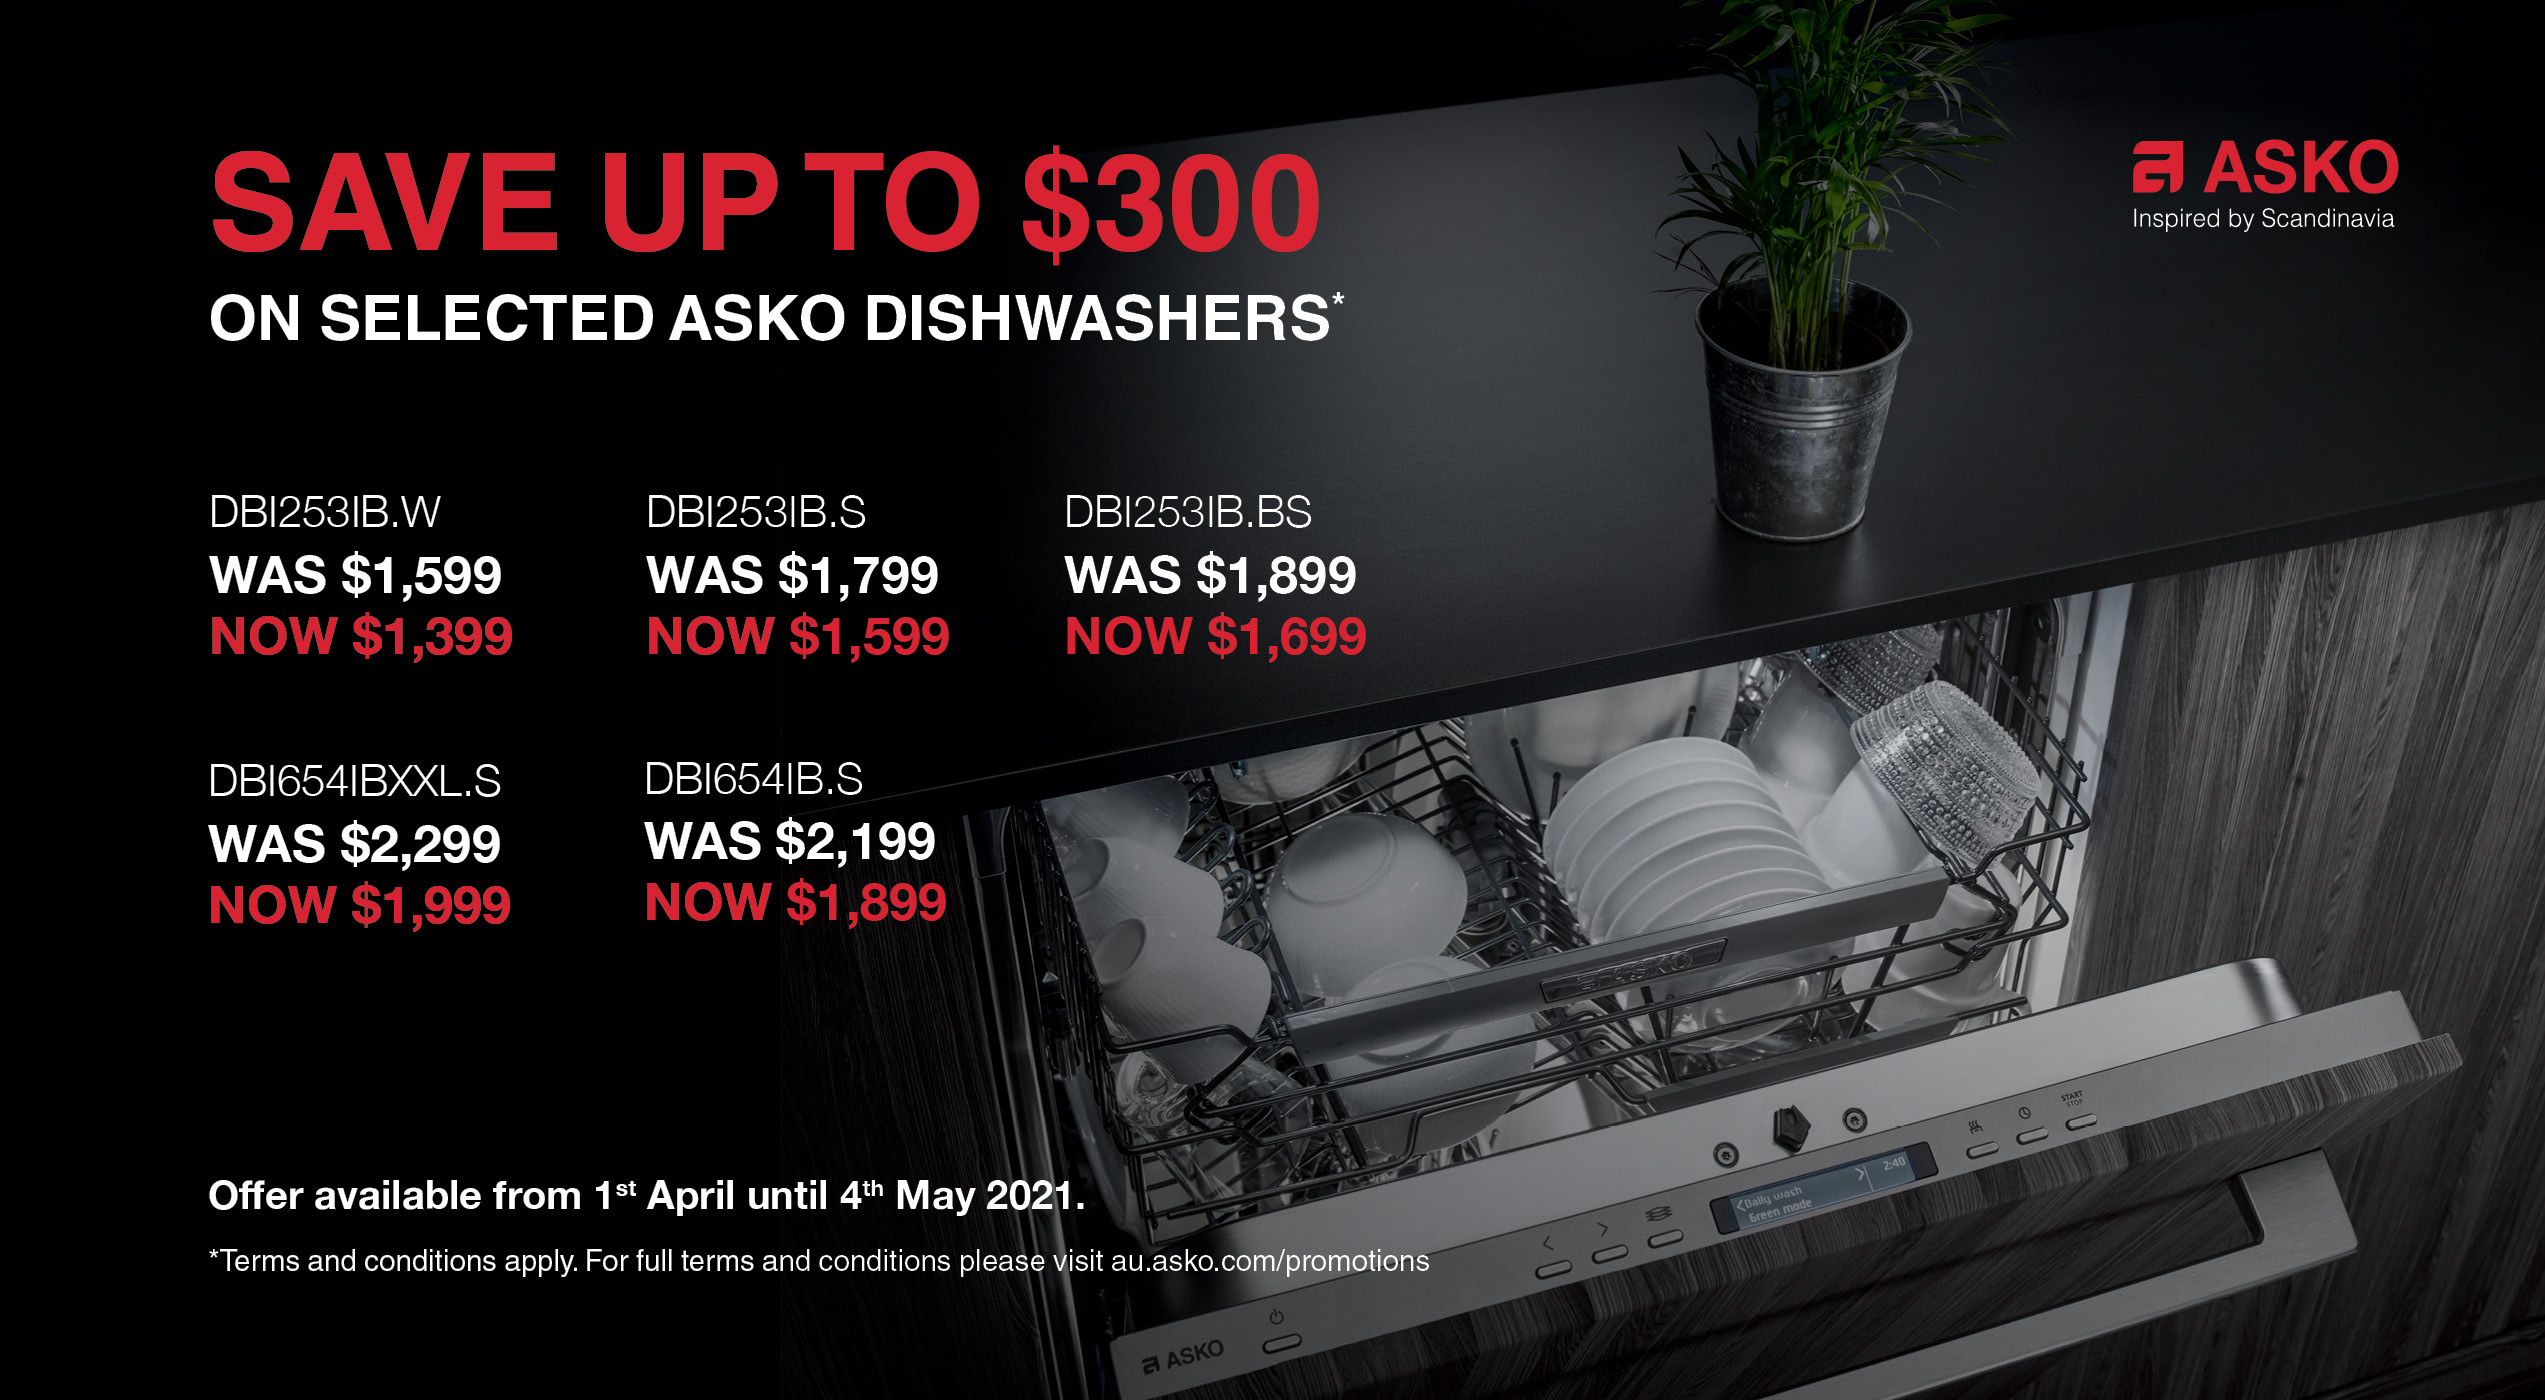 Savings up to $300 on selected Asko Dishwasher